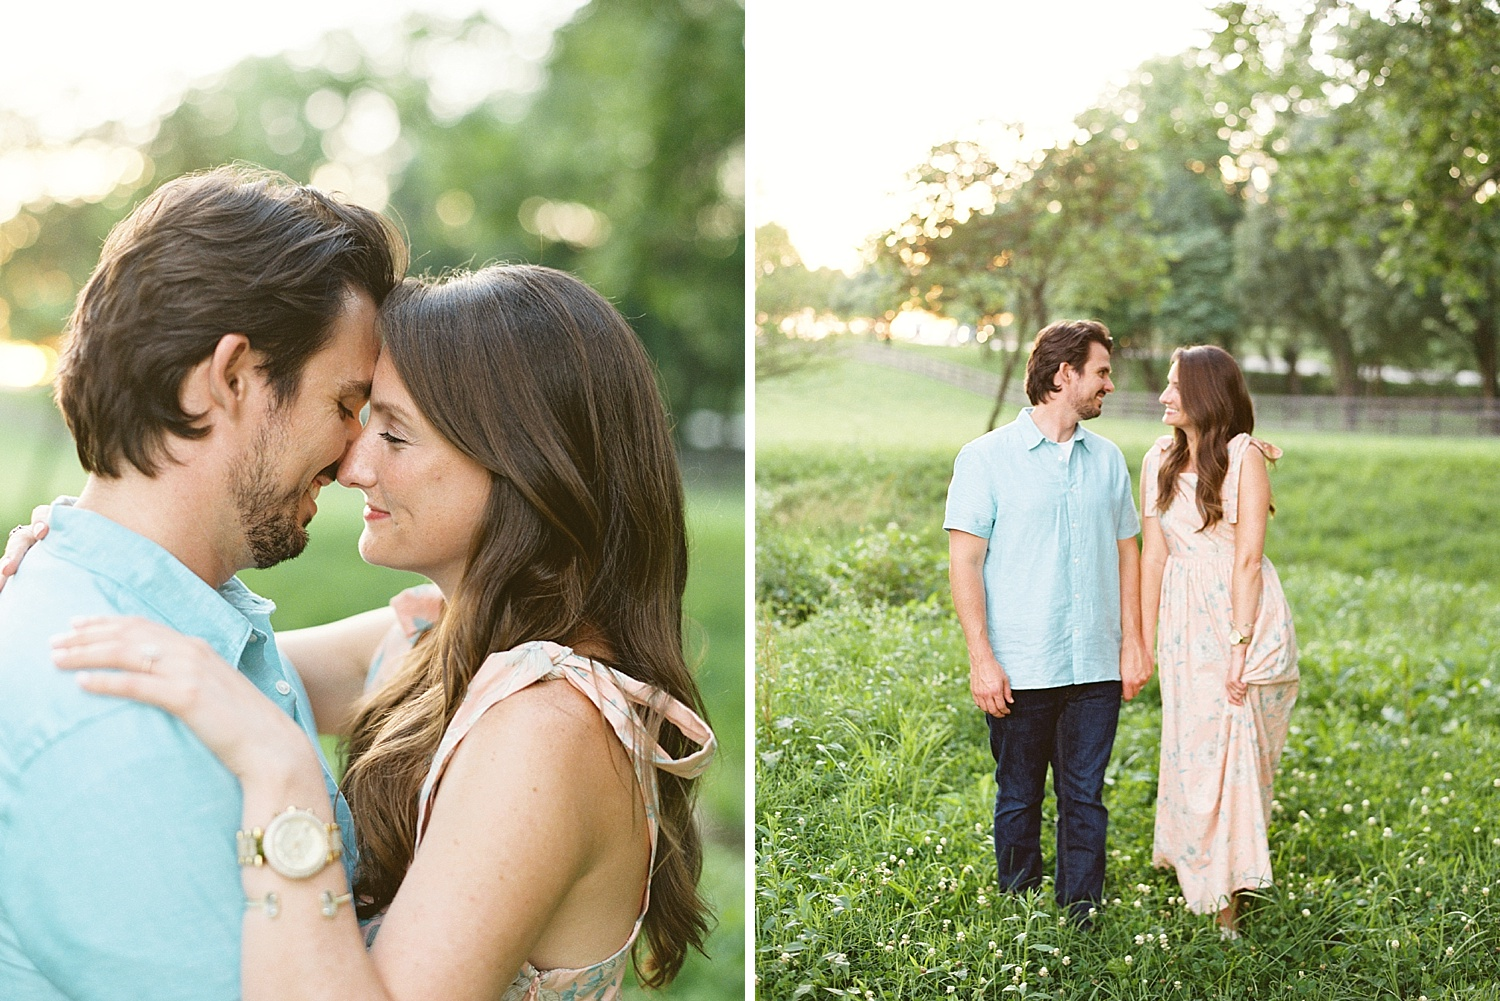 Downtown Lexington Engagement Session Talon Winery Picnic Engagement Session Gal Meets Glam Anthropologie Dress Laura Bodnar Photography Lexington Wedding Photographer Film Photography_0018-1.jpg